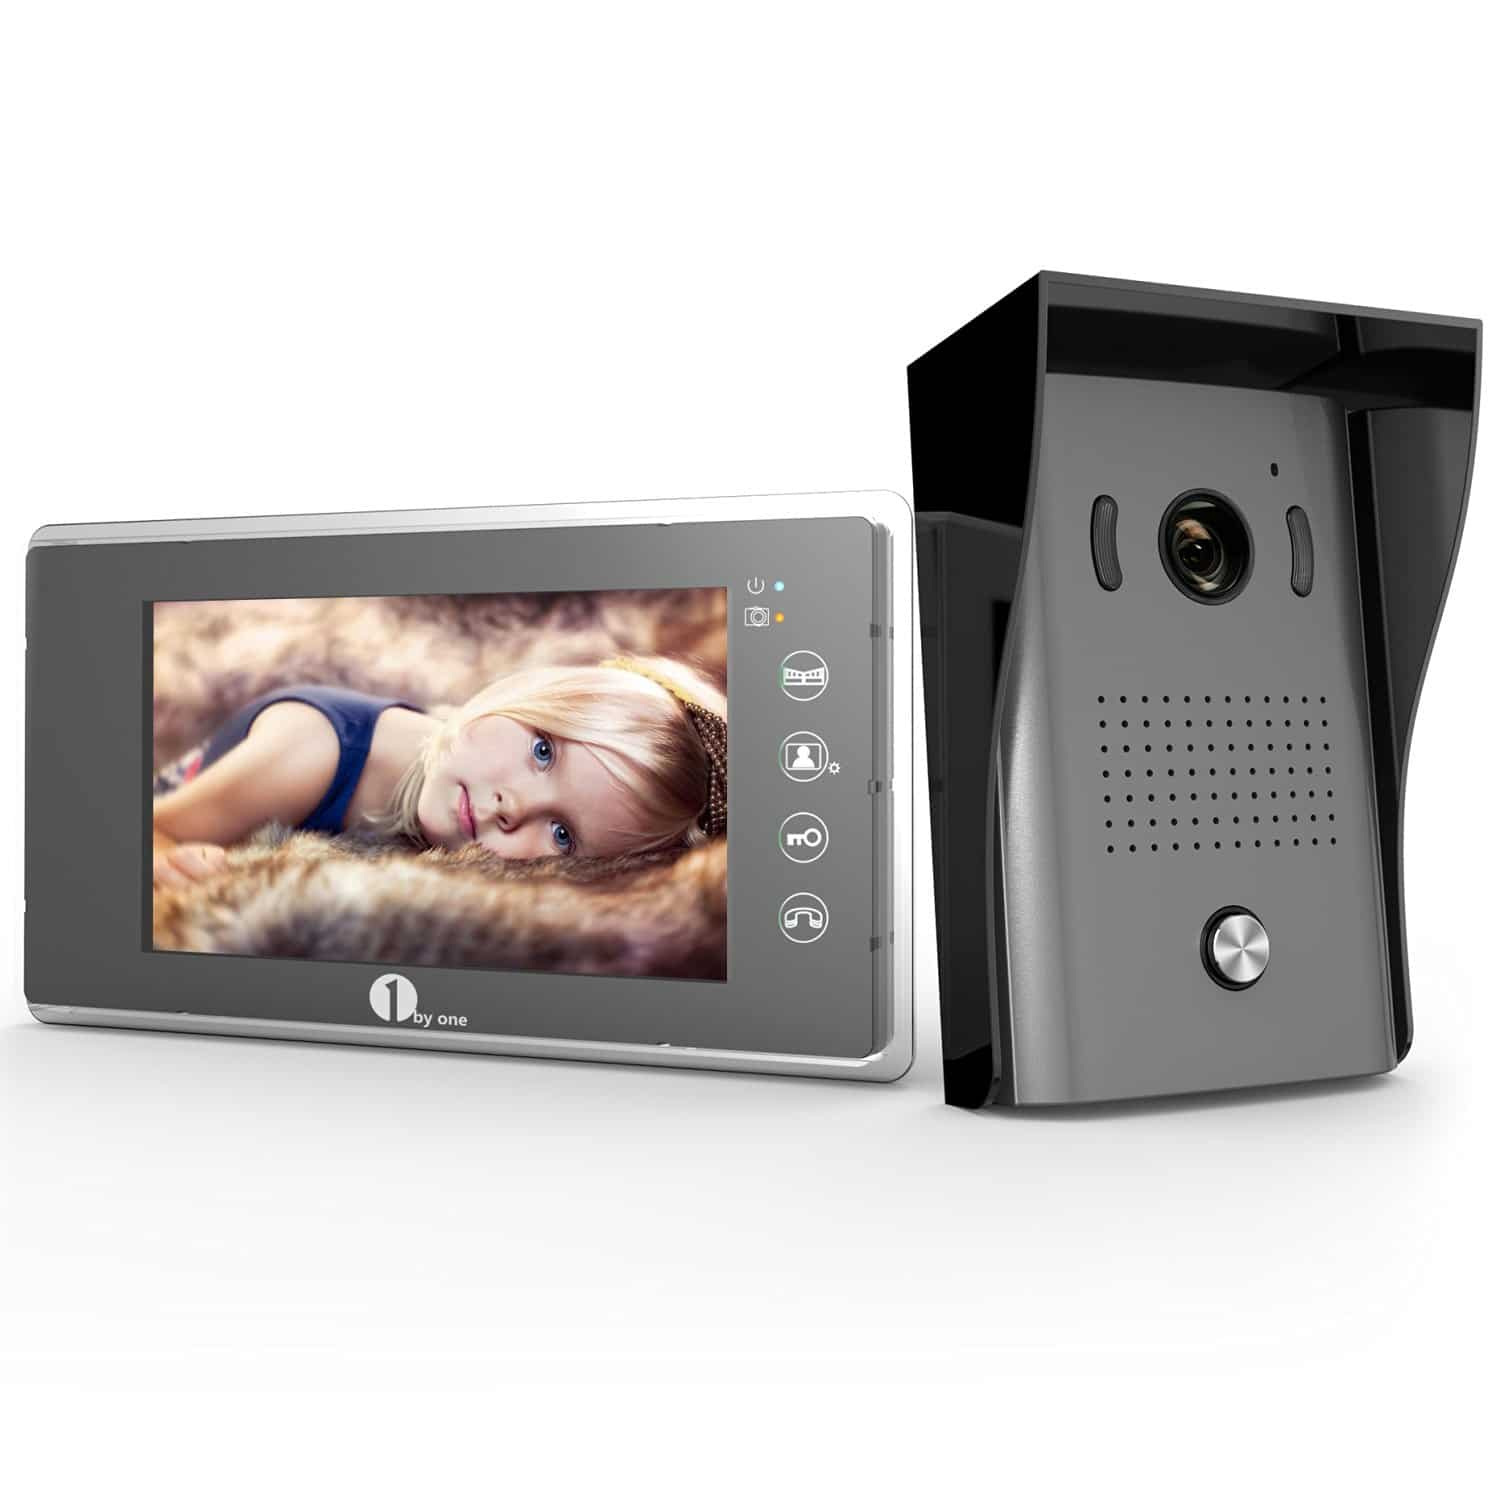 "1by one 7"" Color LCD Touch Screen Wired Video Doorbell"